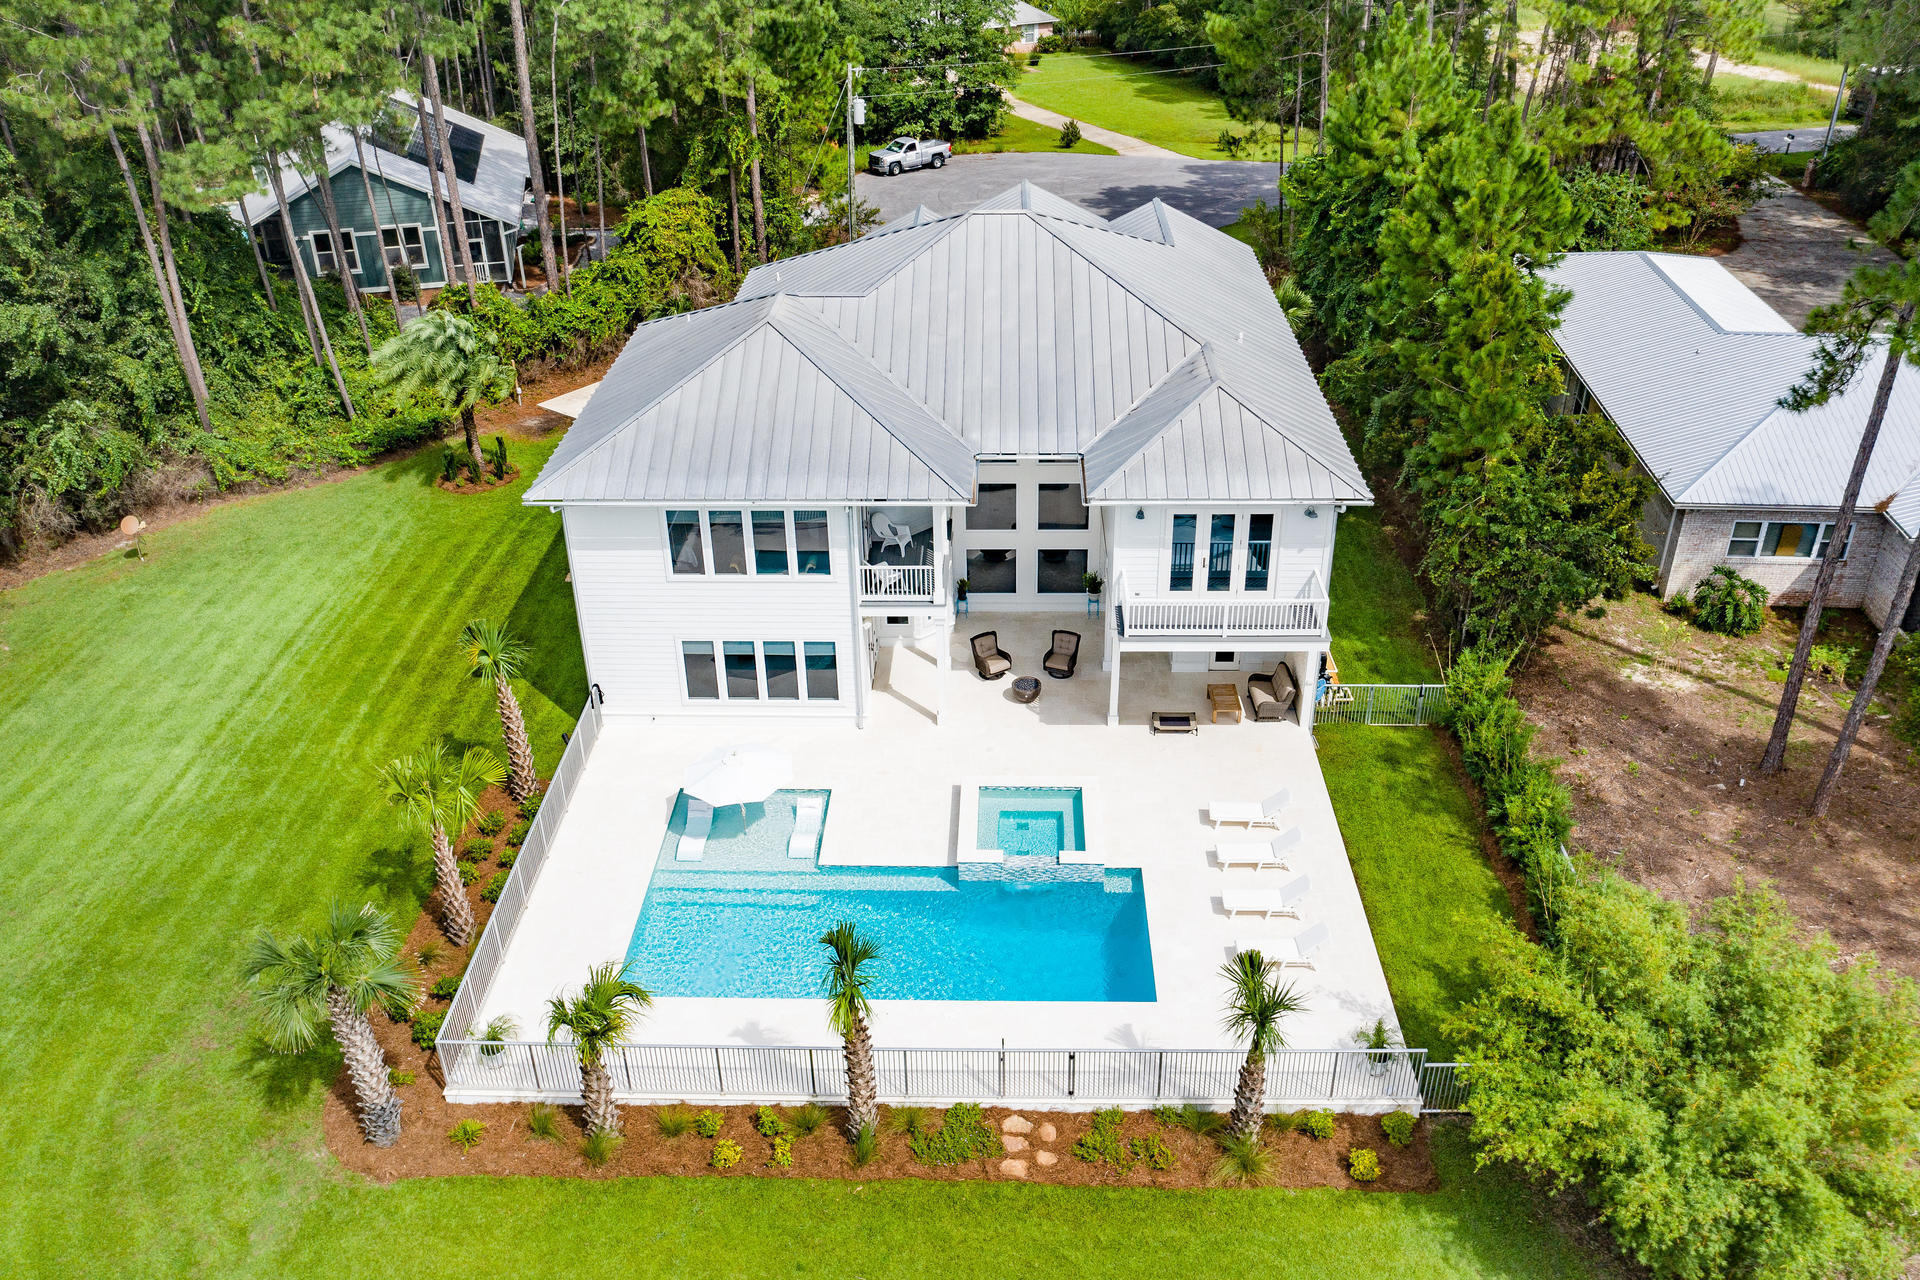 UNDER CONTRACT but Active and taking backup offers. Nestled on Lake Alicia, this charming 5bedrooms|5.5 baths is less than 5 mins to South Walton's 1 of 3 public beach access. Meticulously designed and well maintained your family will fall in love with large bedrooms, ensuite baths and private balconies. Upgrades throughout, lime stone countertops, Jenn-Air appliances, brand new outdoor kitchen. 22,000 gallon pool with 12 person Jacuzzi.